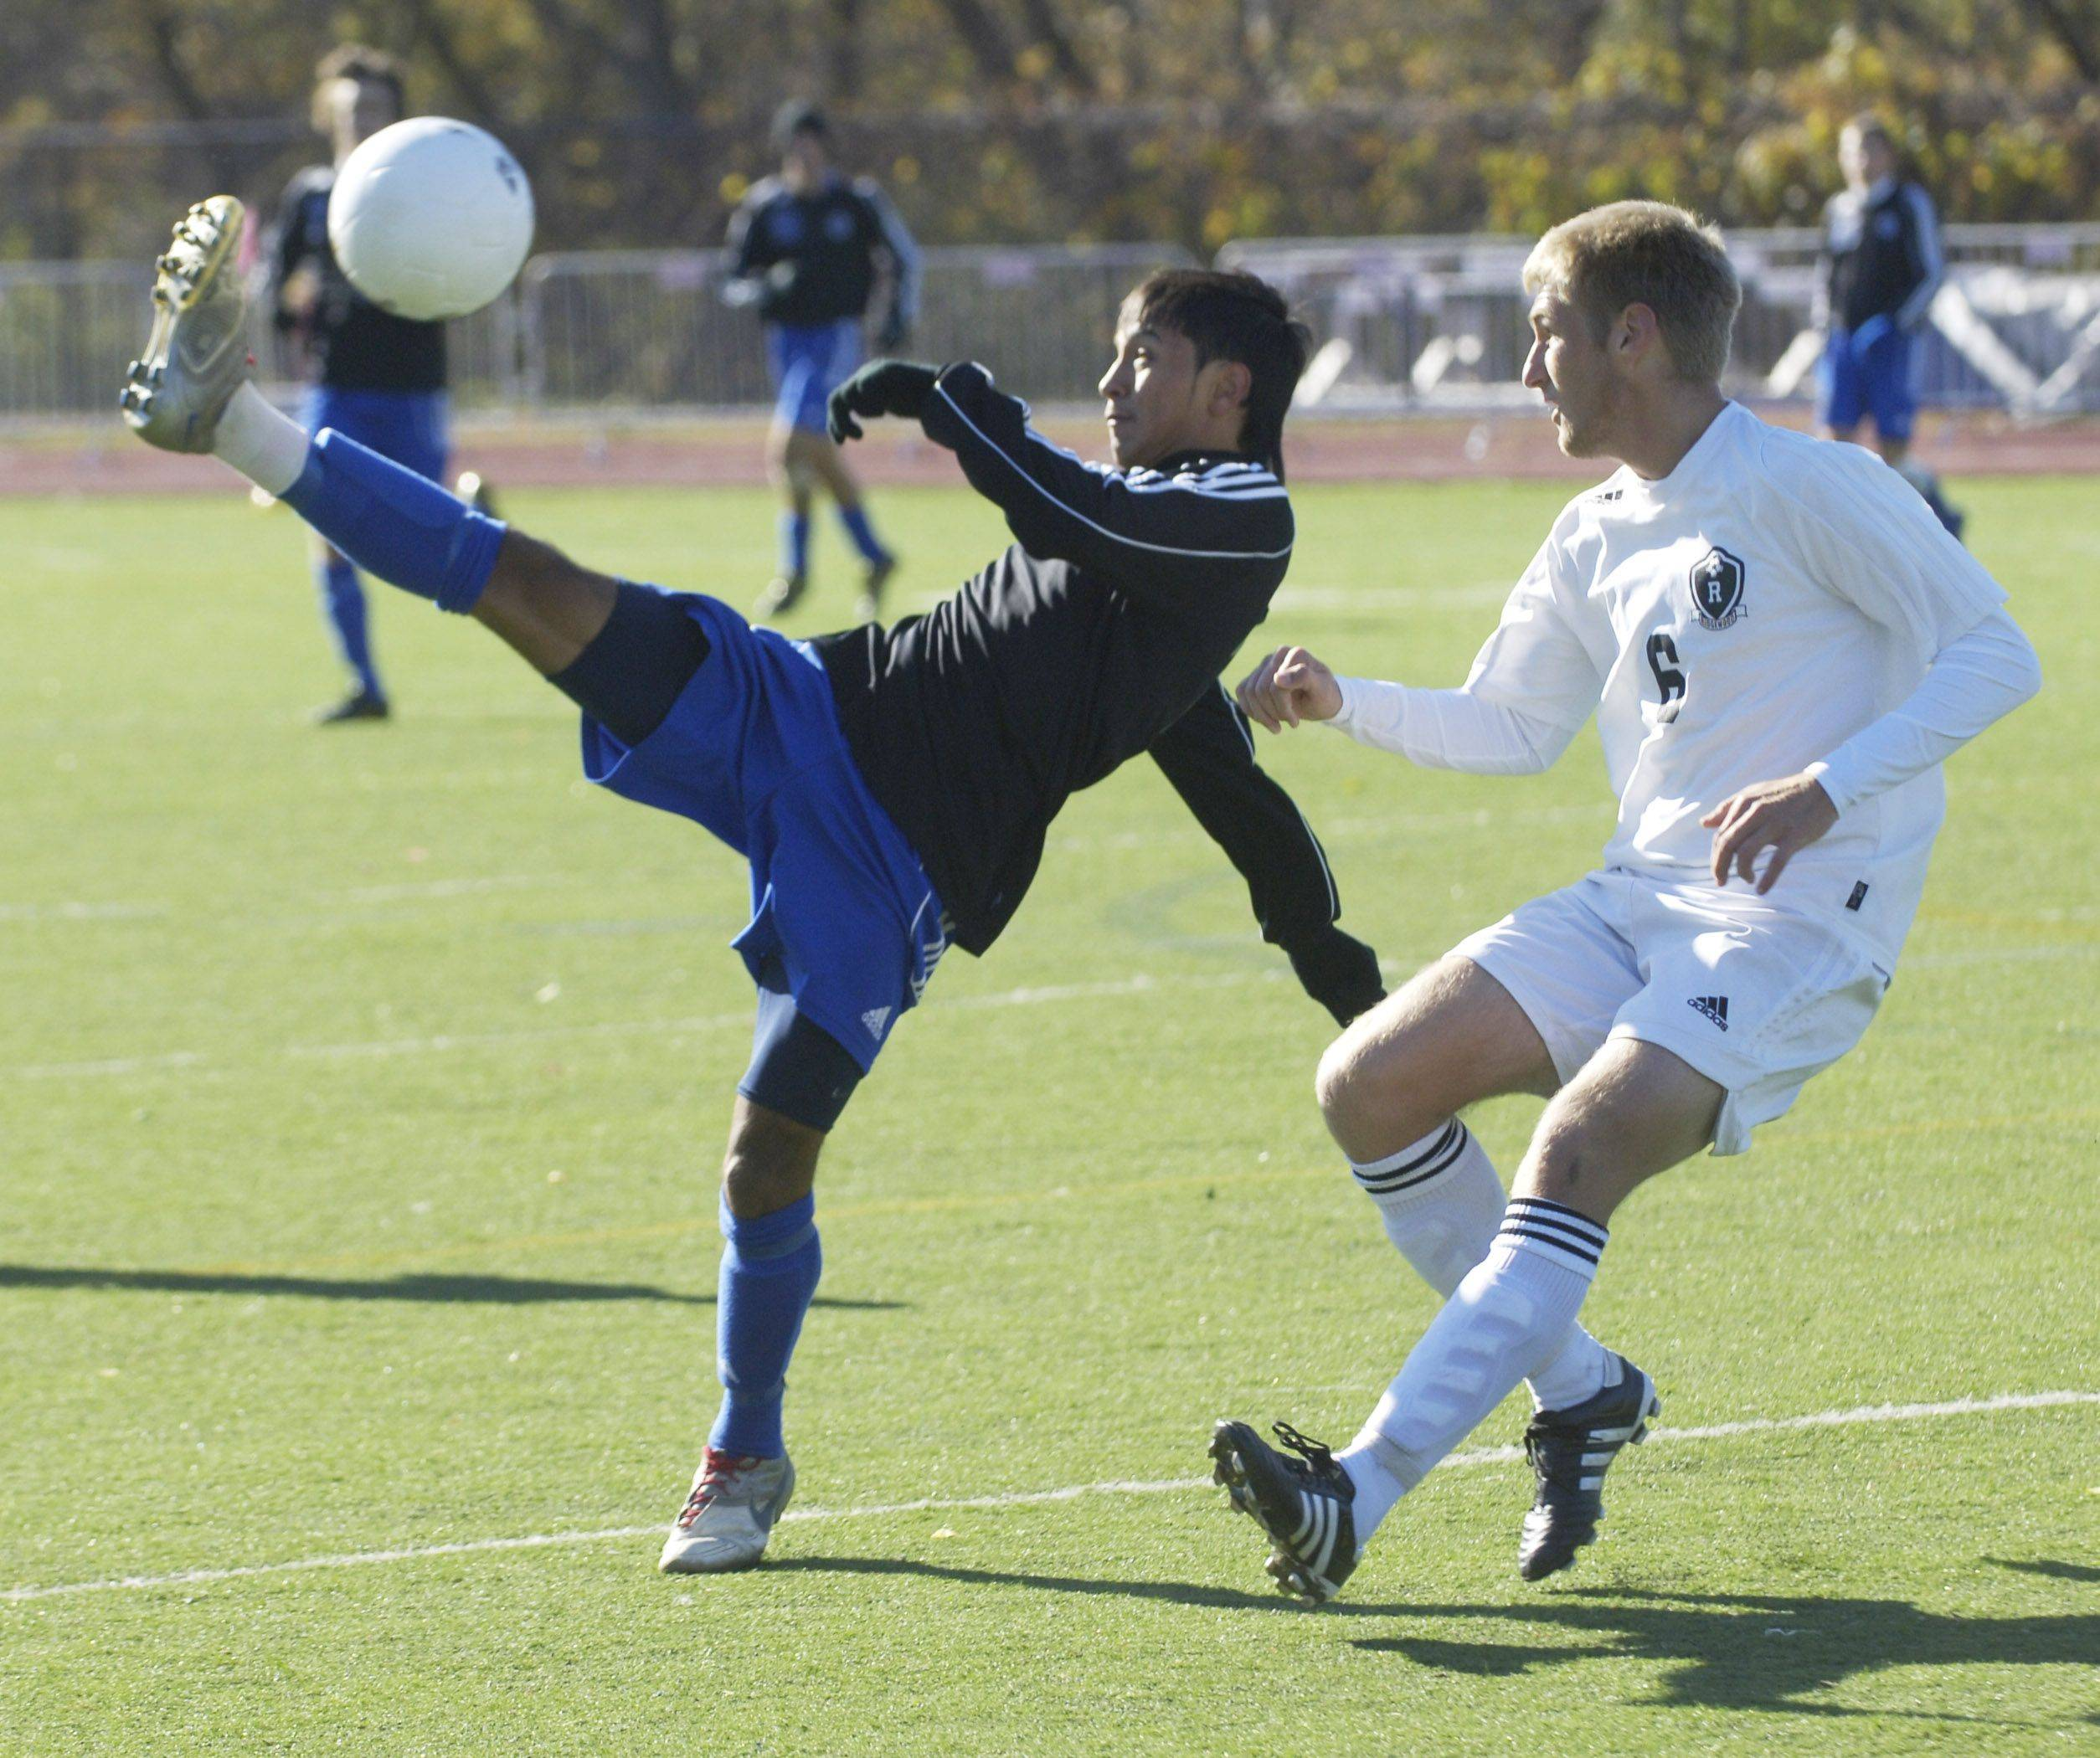 Alexis Camarena of Burlington Central, left, kicks high to direct the ball past Ridgewood's Mike Kuczek .